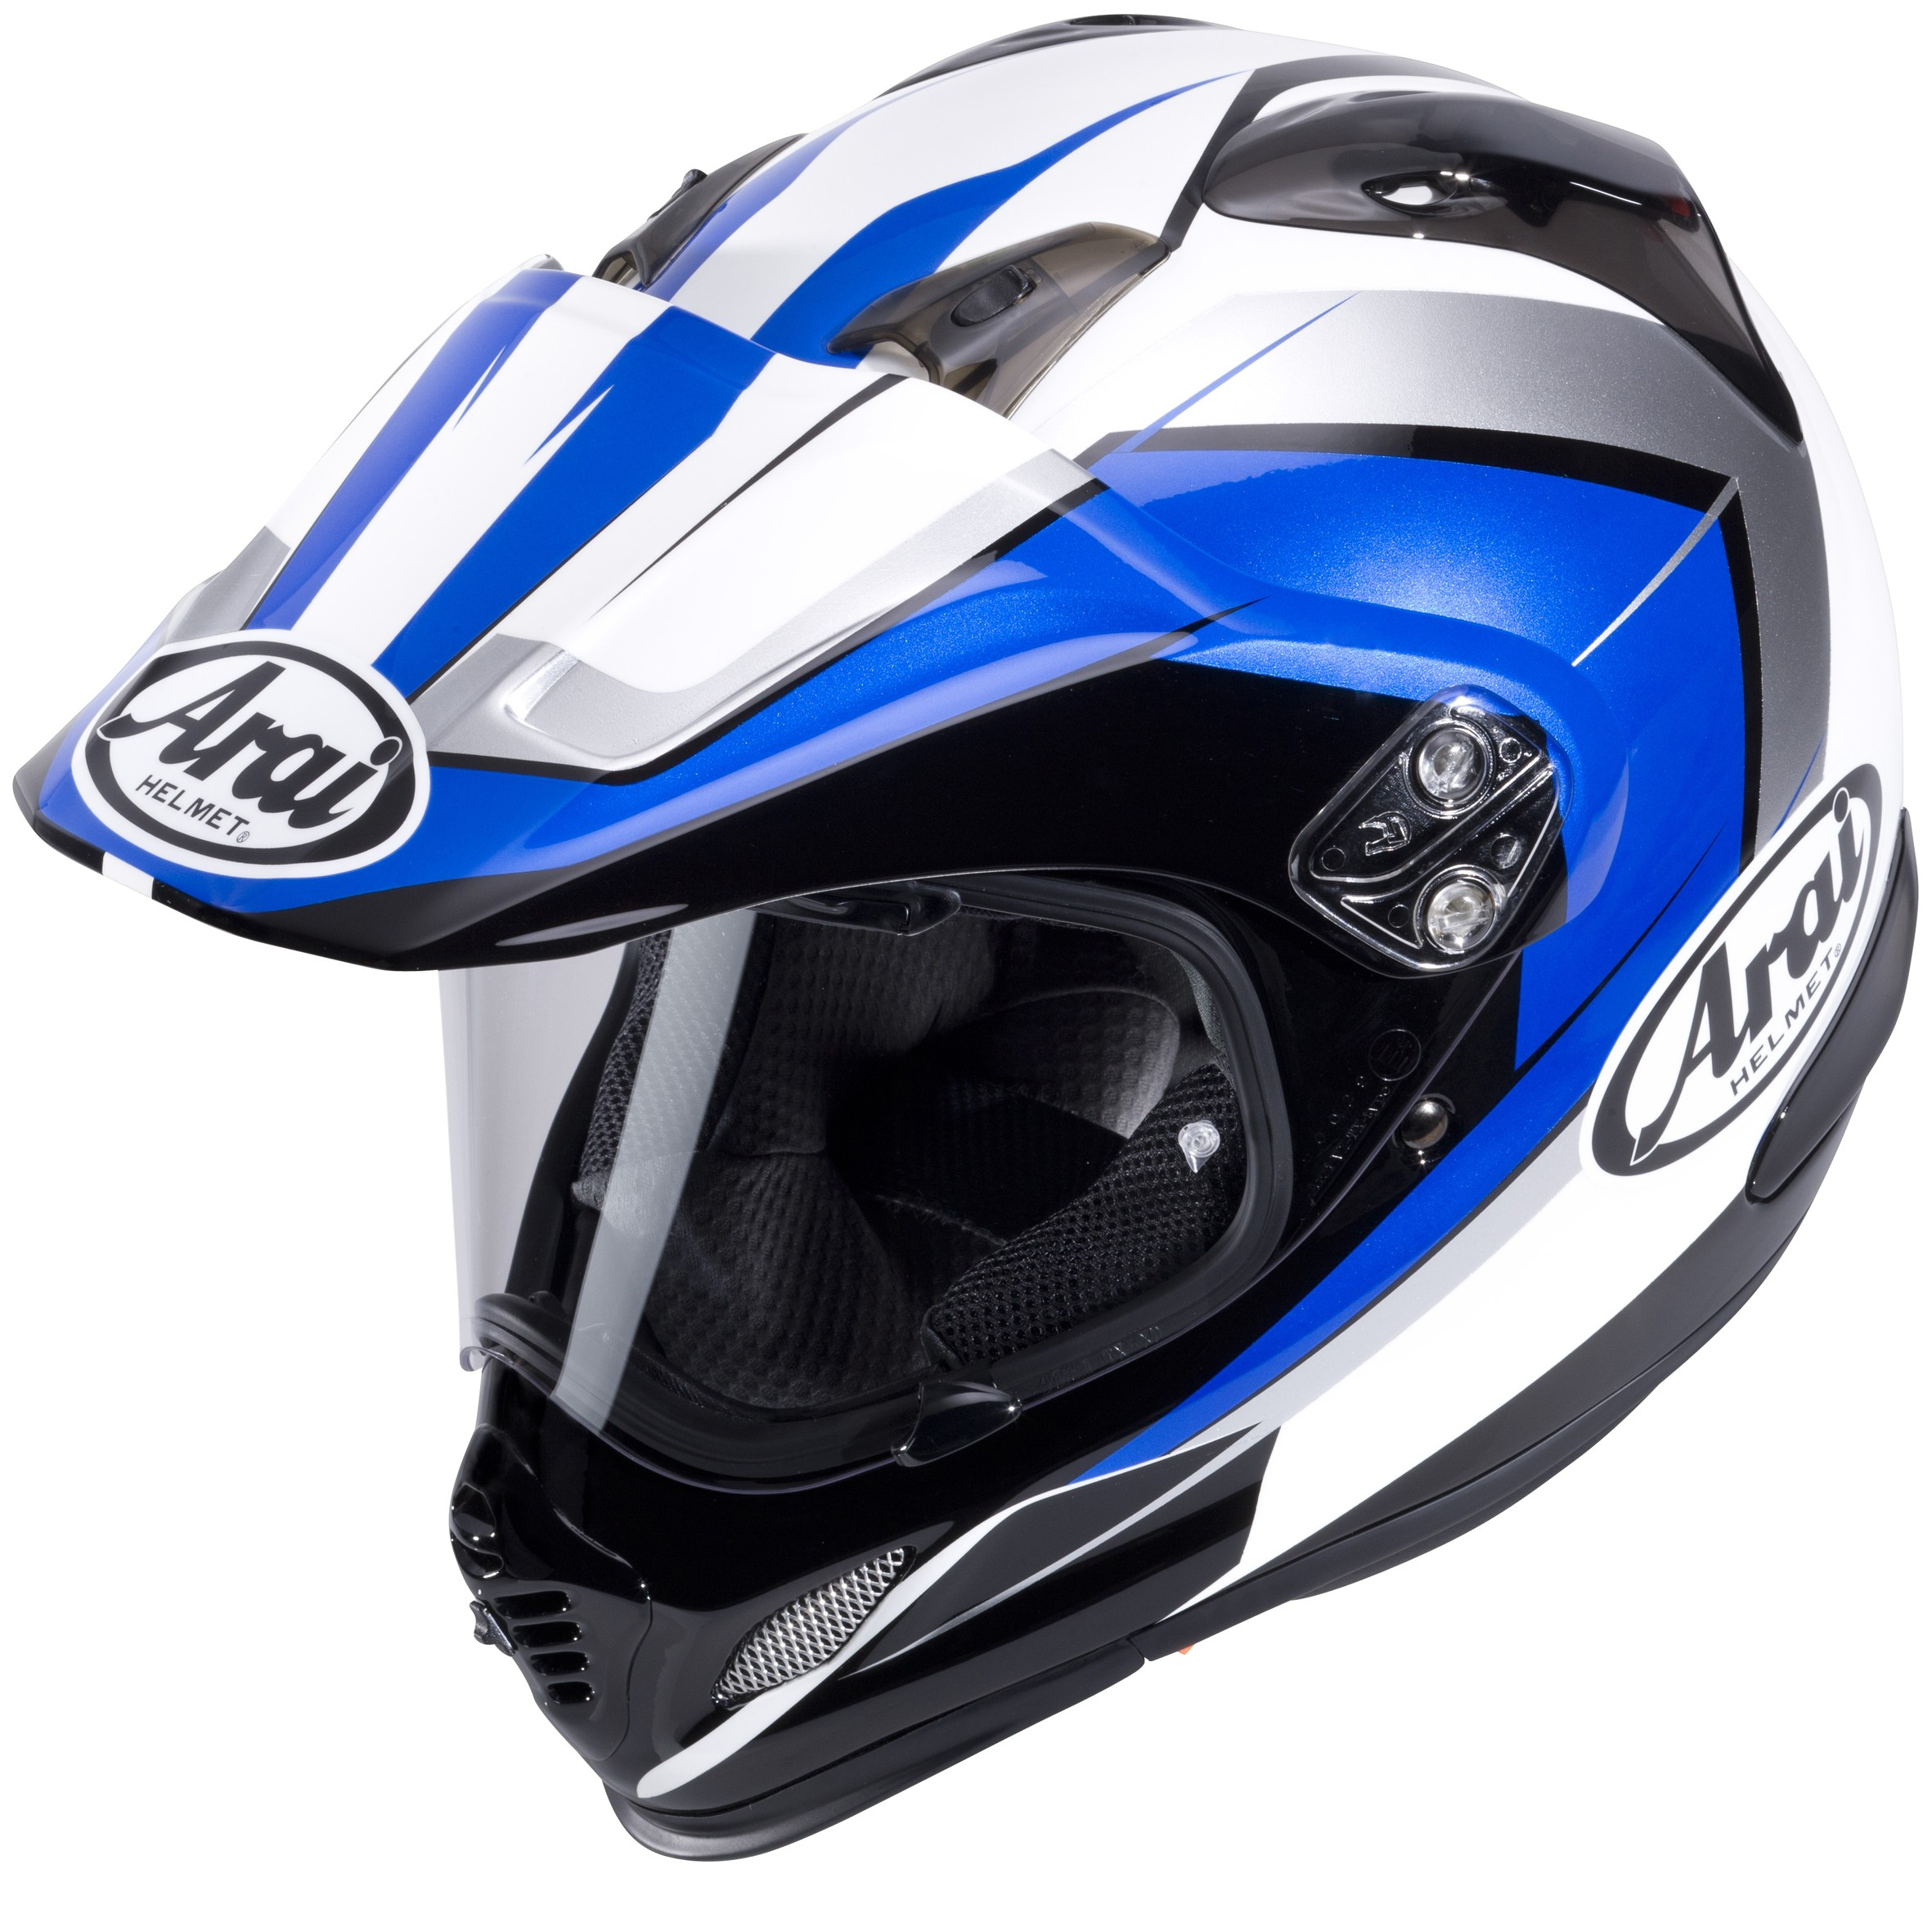 How to Fit a Riding Helmet How to Fit a Riding Helmet new pics